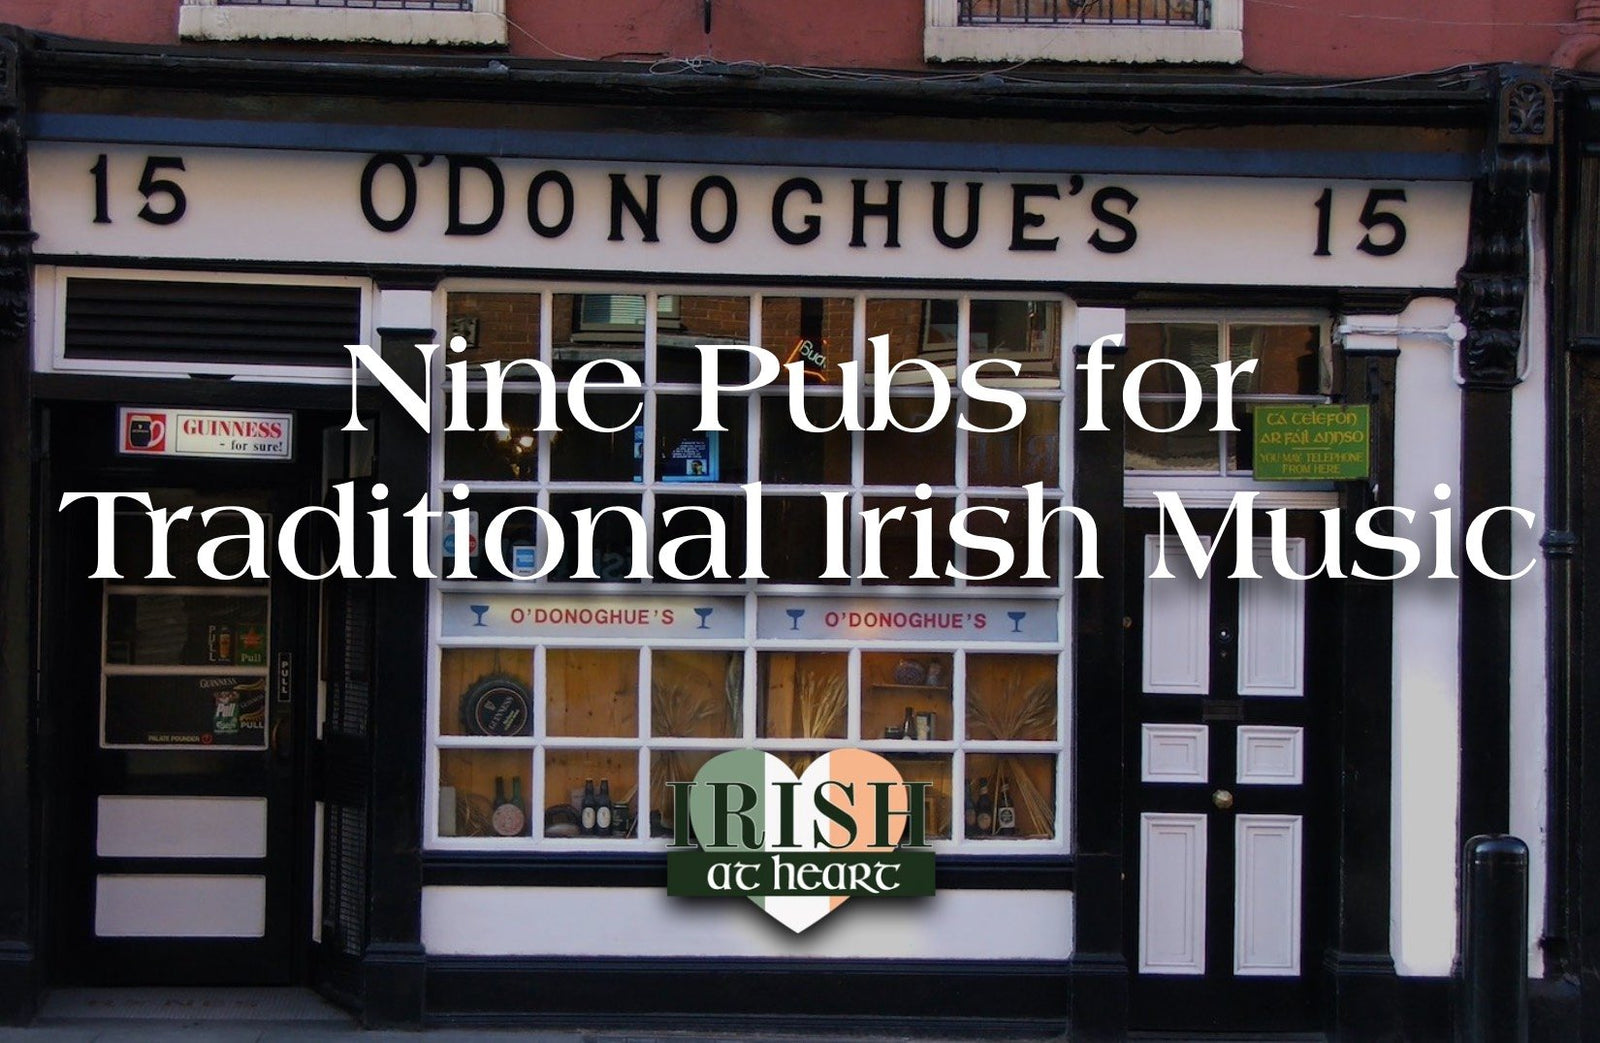 Nine Pubs for Traditional Irish Music